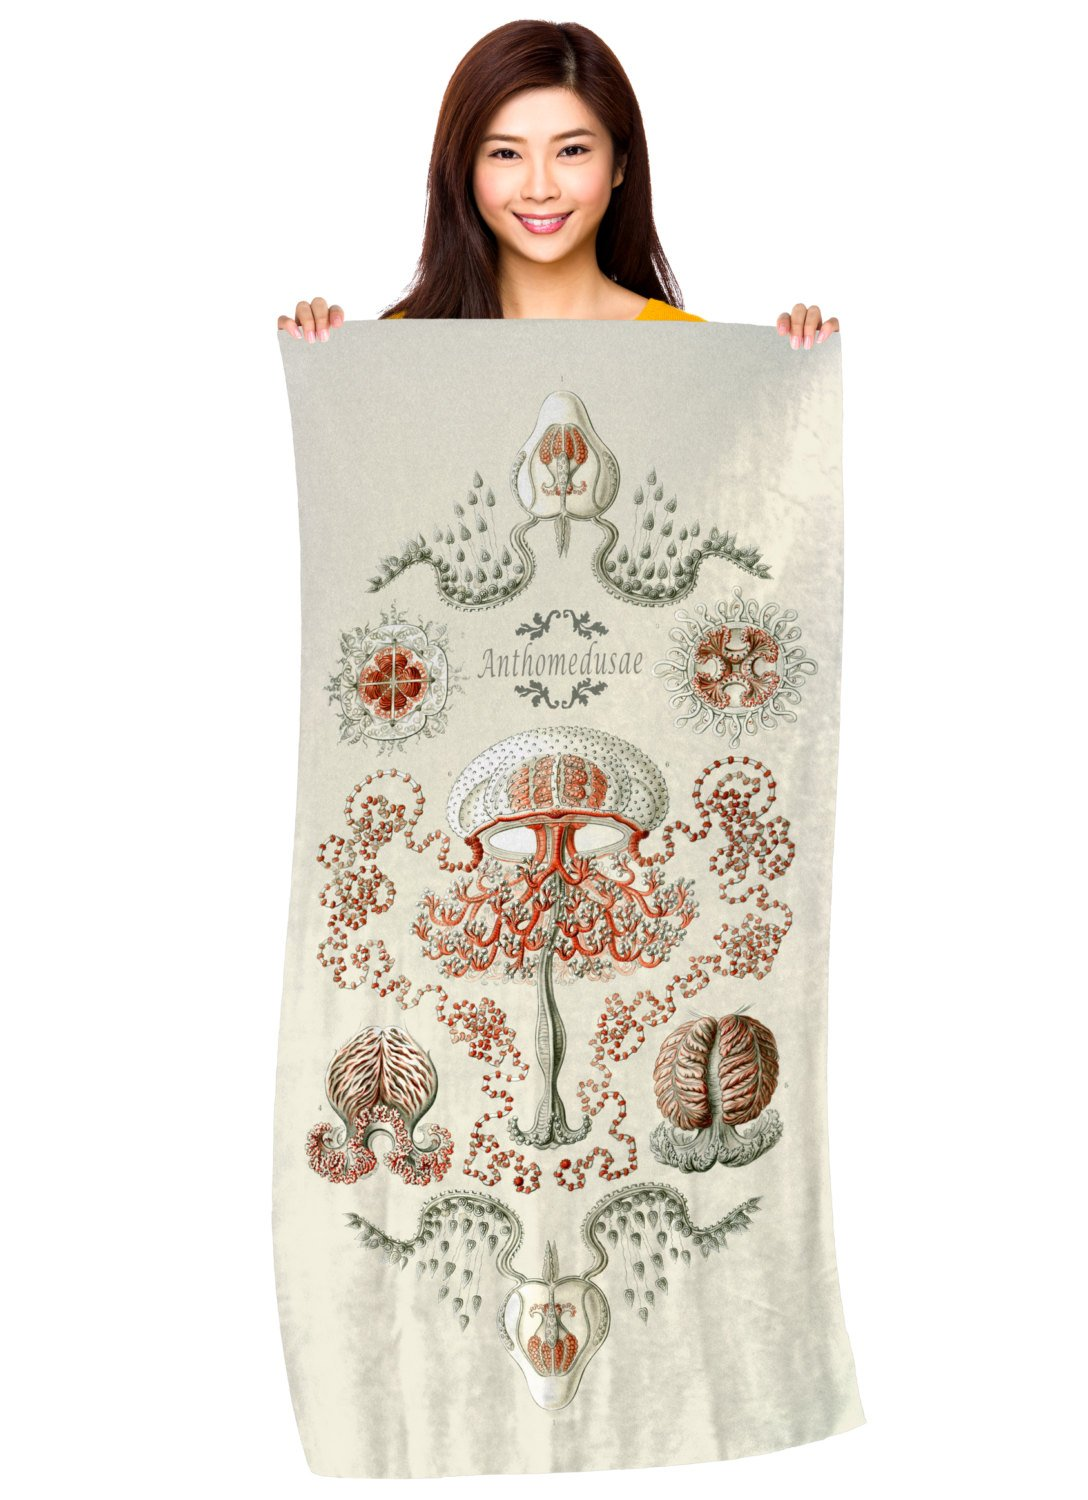 "Artistic Jellyfish Illustration- ""Anthomedusae by Haeckel""- Microfiber Beach Towel"